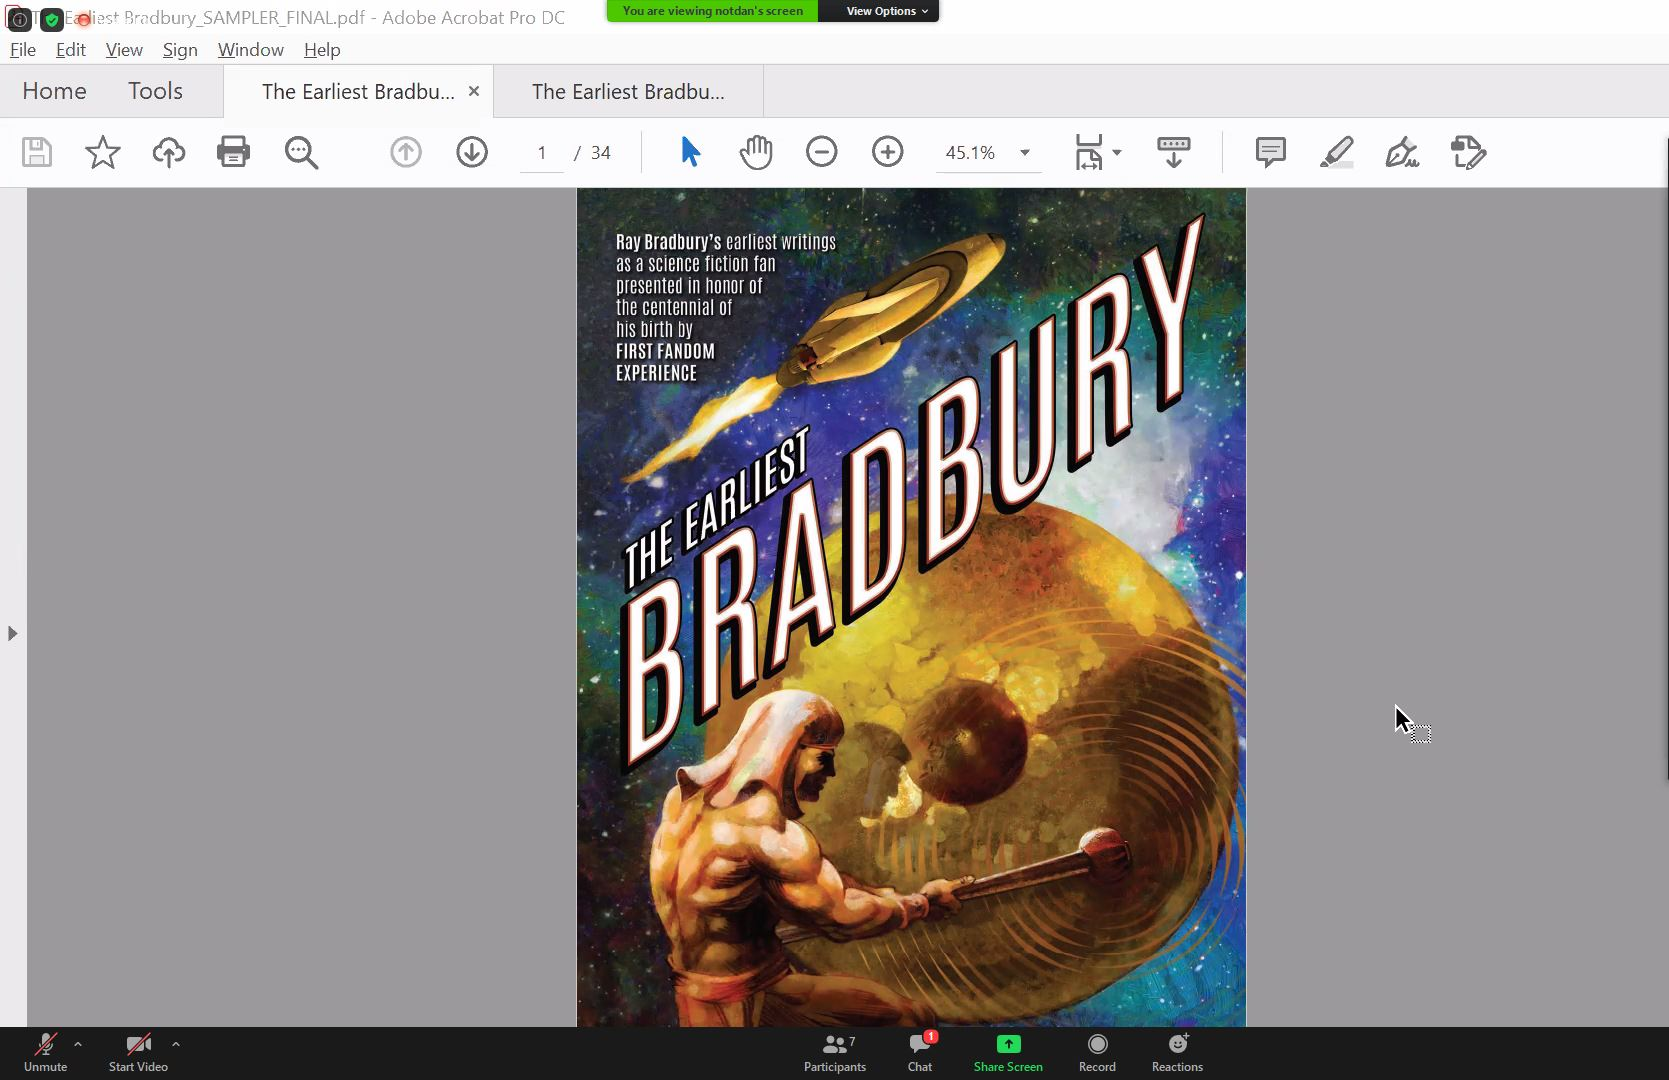 Screenshot from screensharing session. What is visible is the cover with title 'Earliest Bradbury'. The picture shows a man playing on big gong. In the background there is a picture of space.